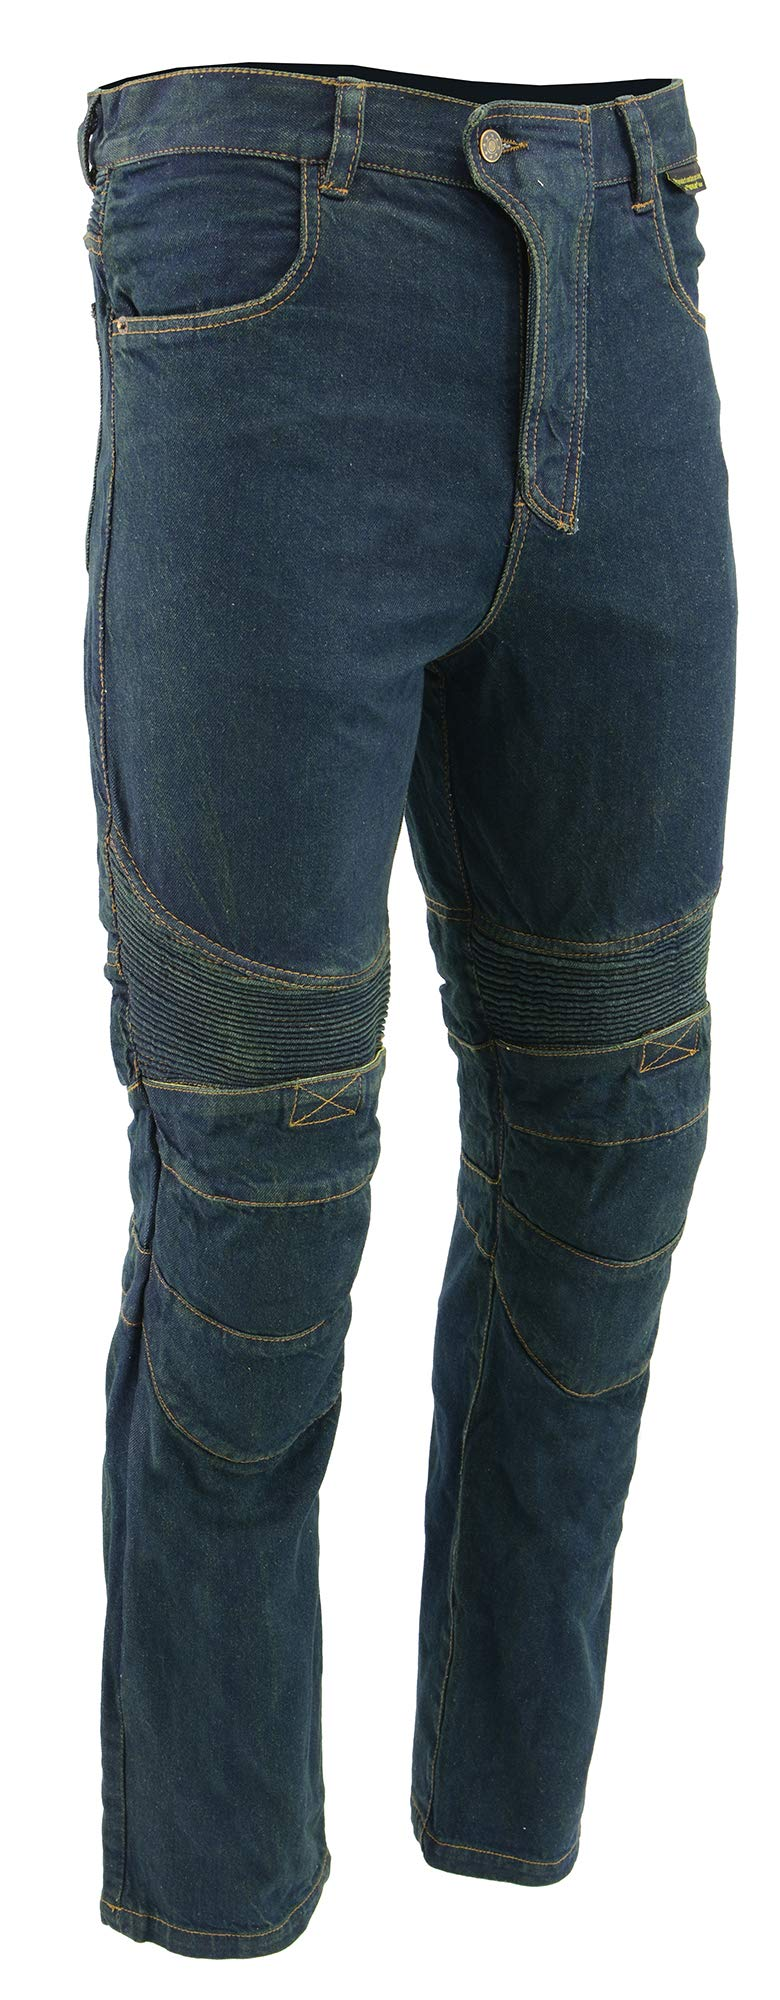 M-BOSS MOTORCYCLE APPAREL-BOS15573-BLUE-Mens denim motorcycle pants with CE armor and Kevlar.-BLUE-38